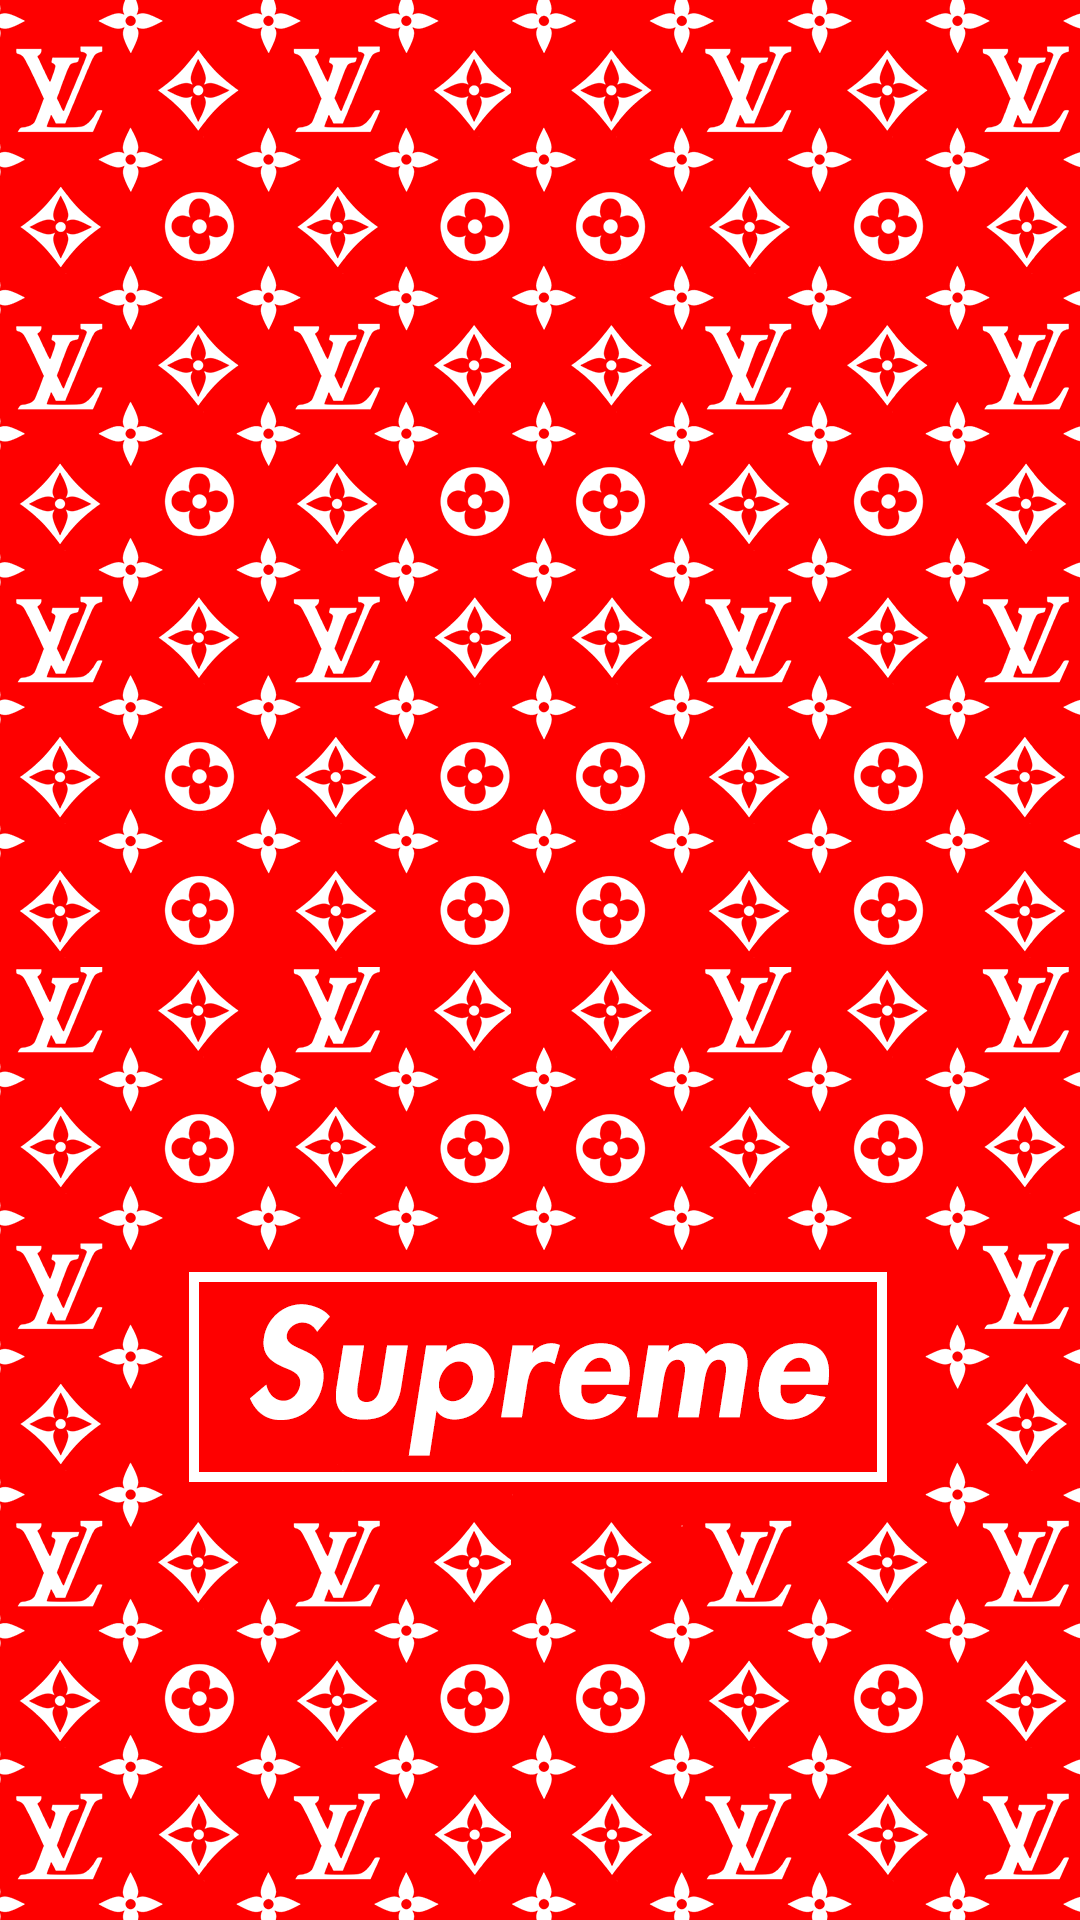 70+ Supreme Wallpapers in 4K AllHDWallpapers